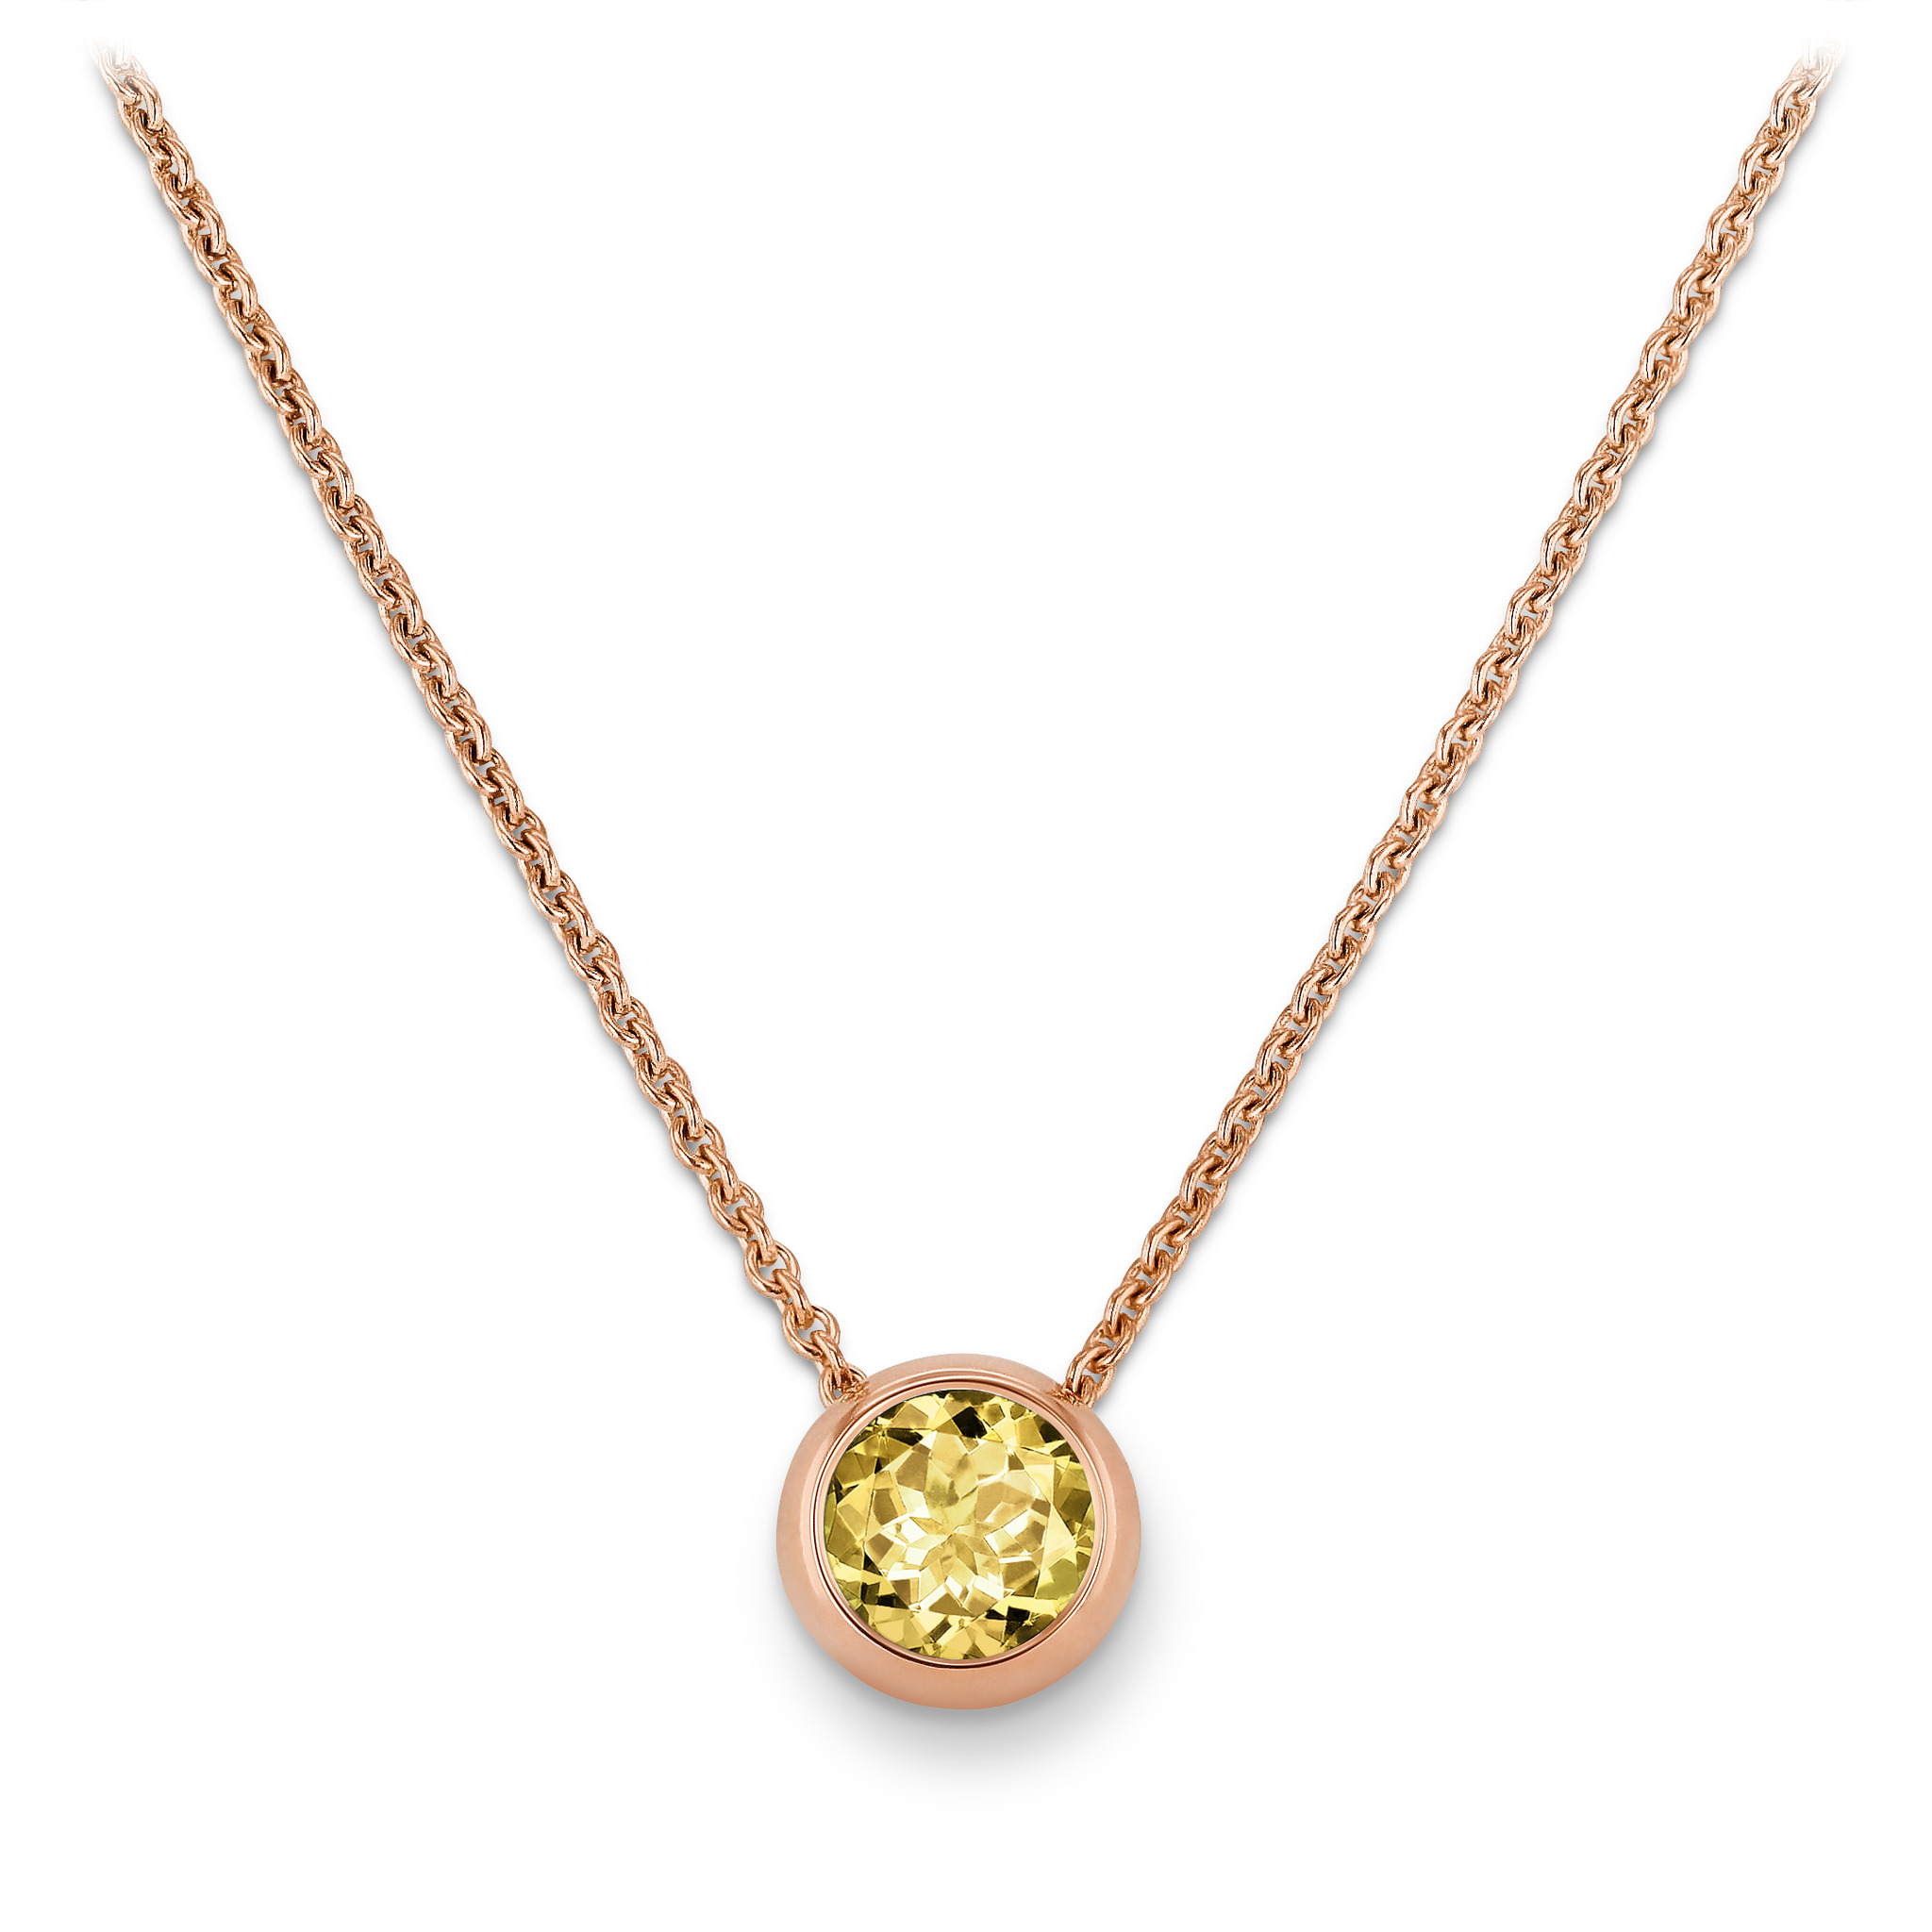 Necklace with beryl